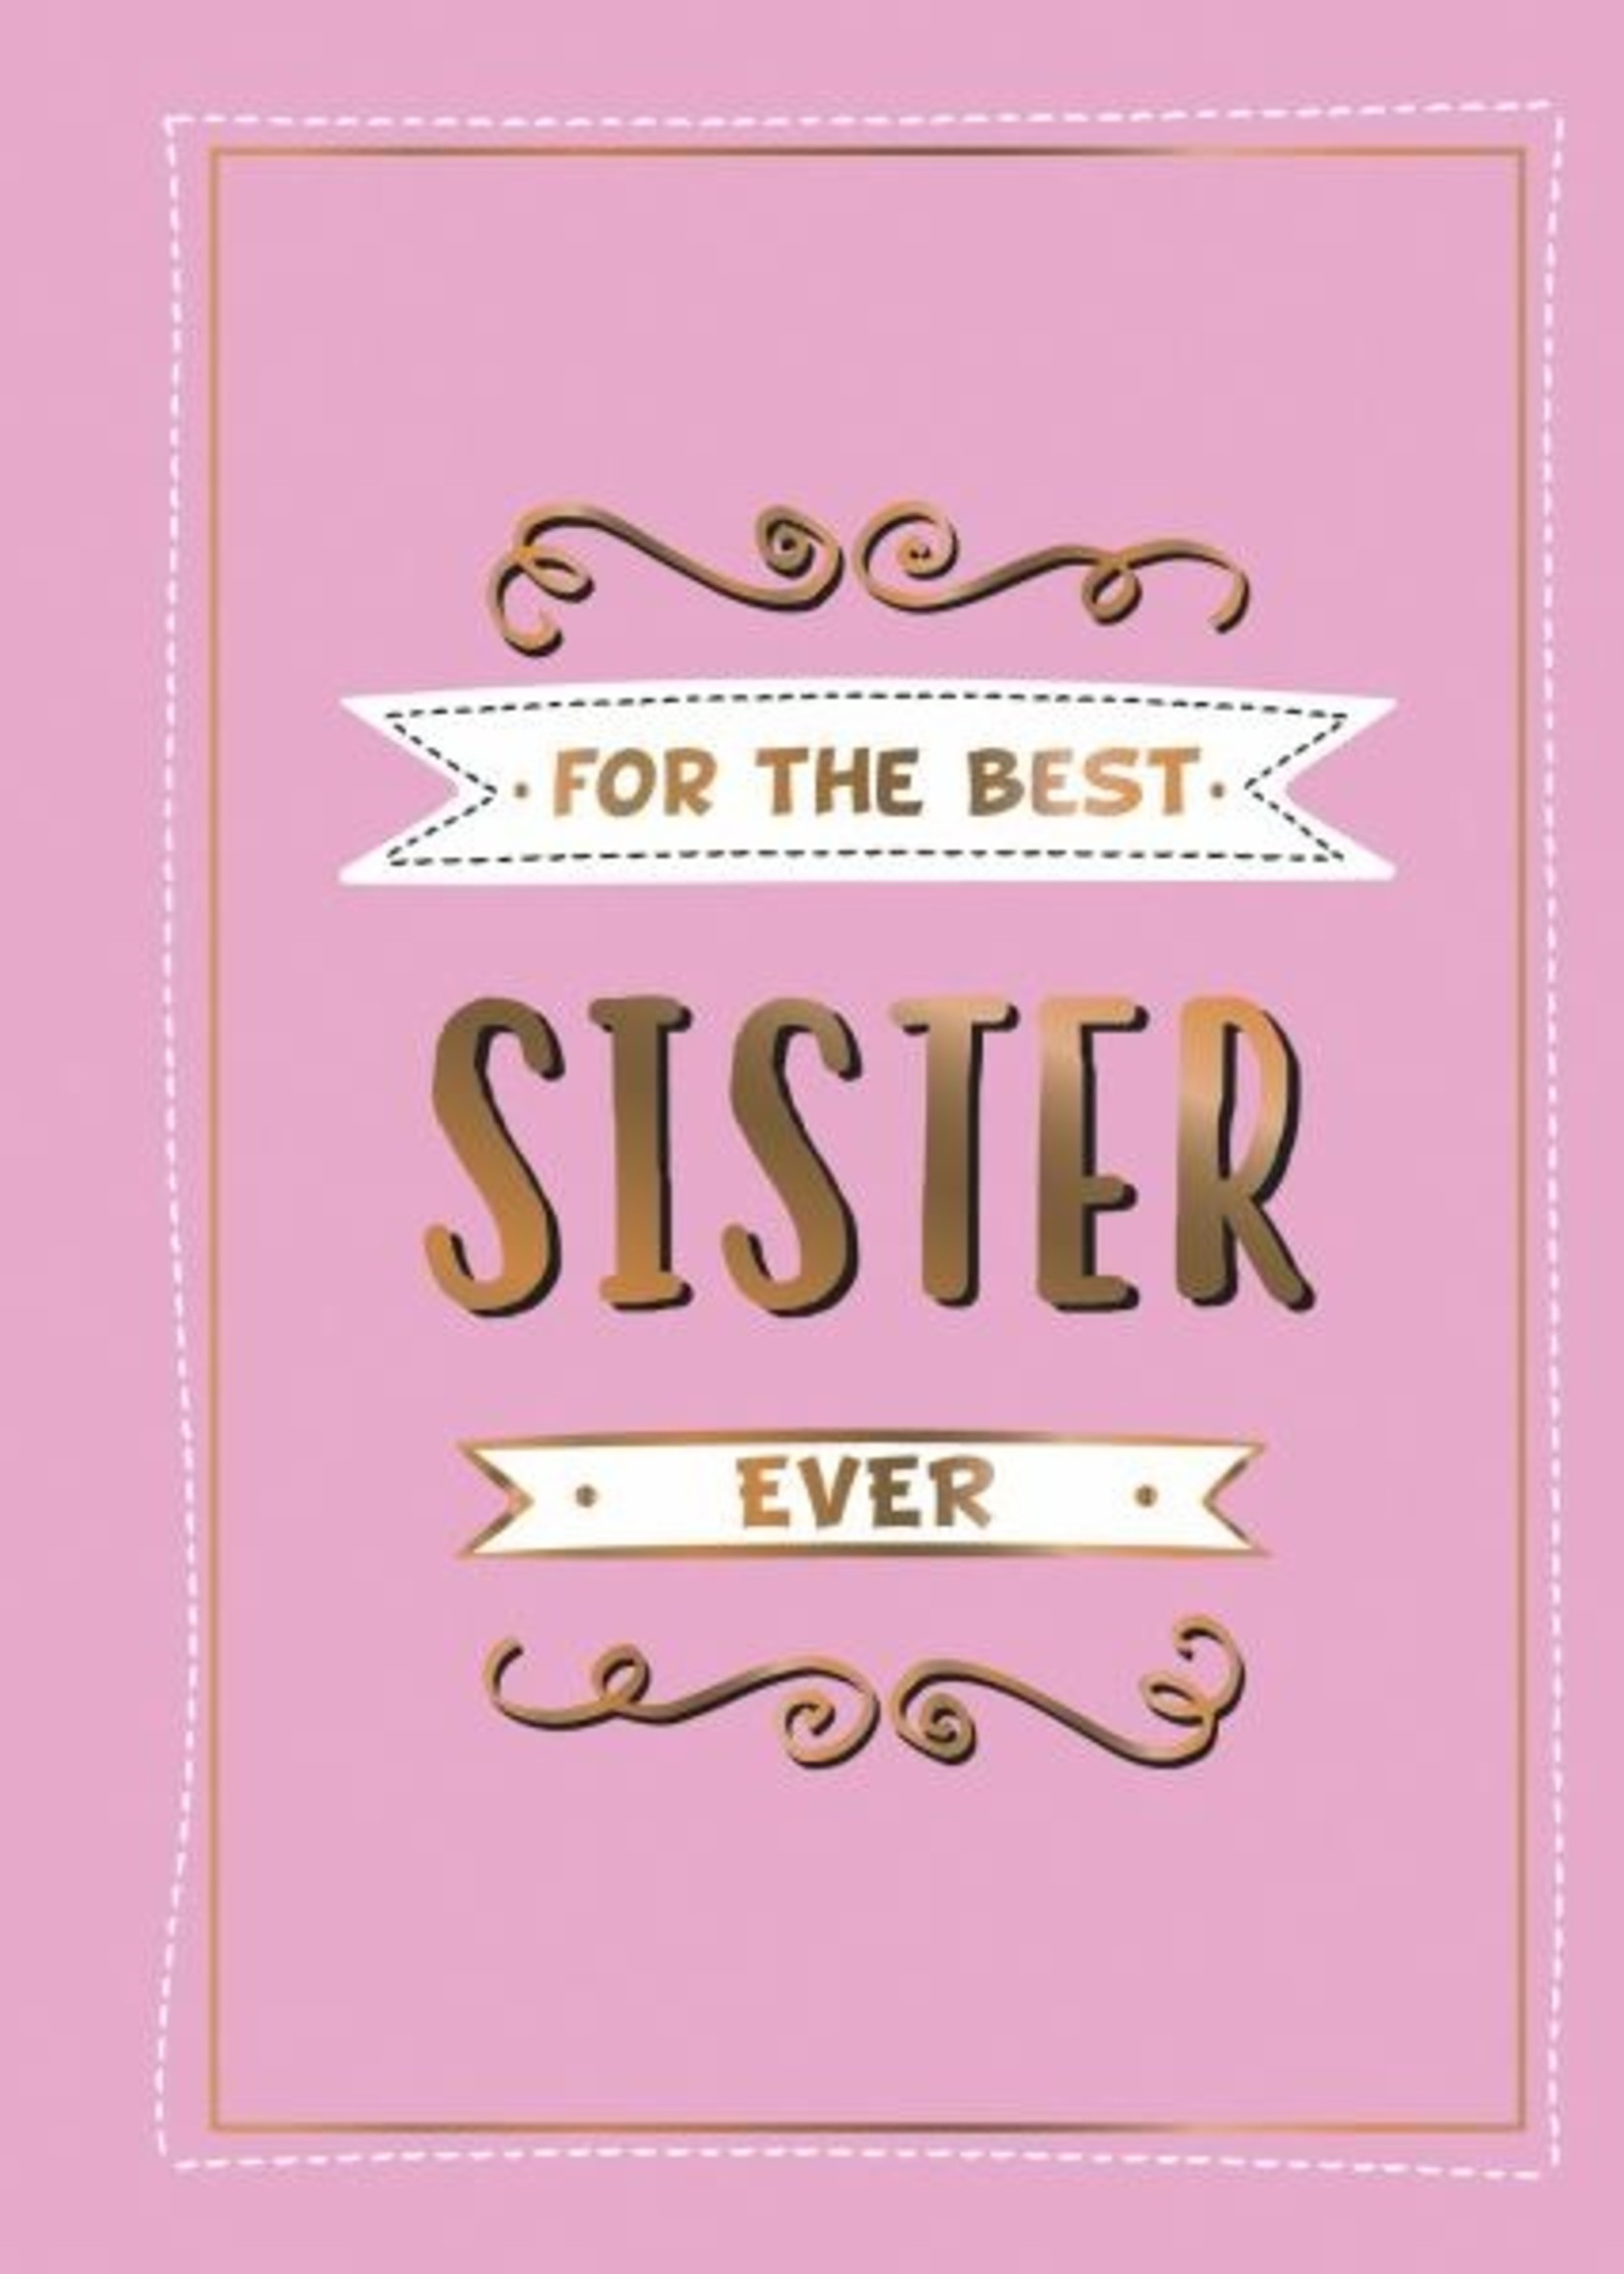 hachette book group hachette for the best sister ever book